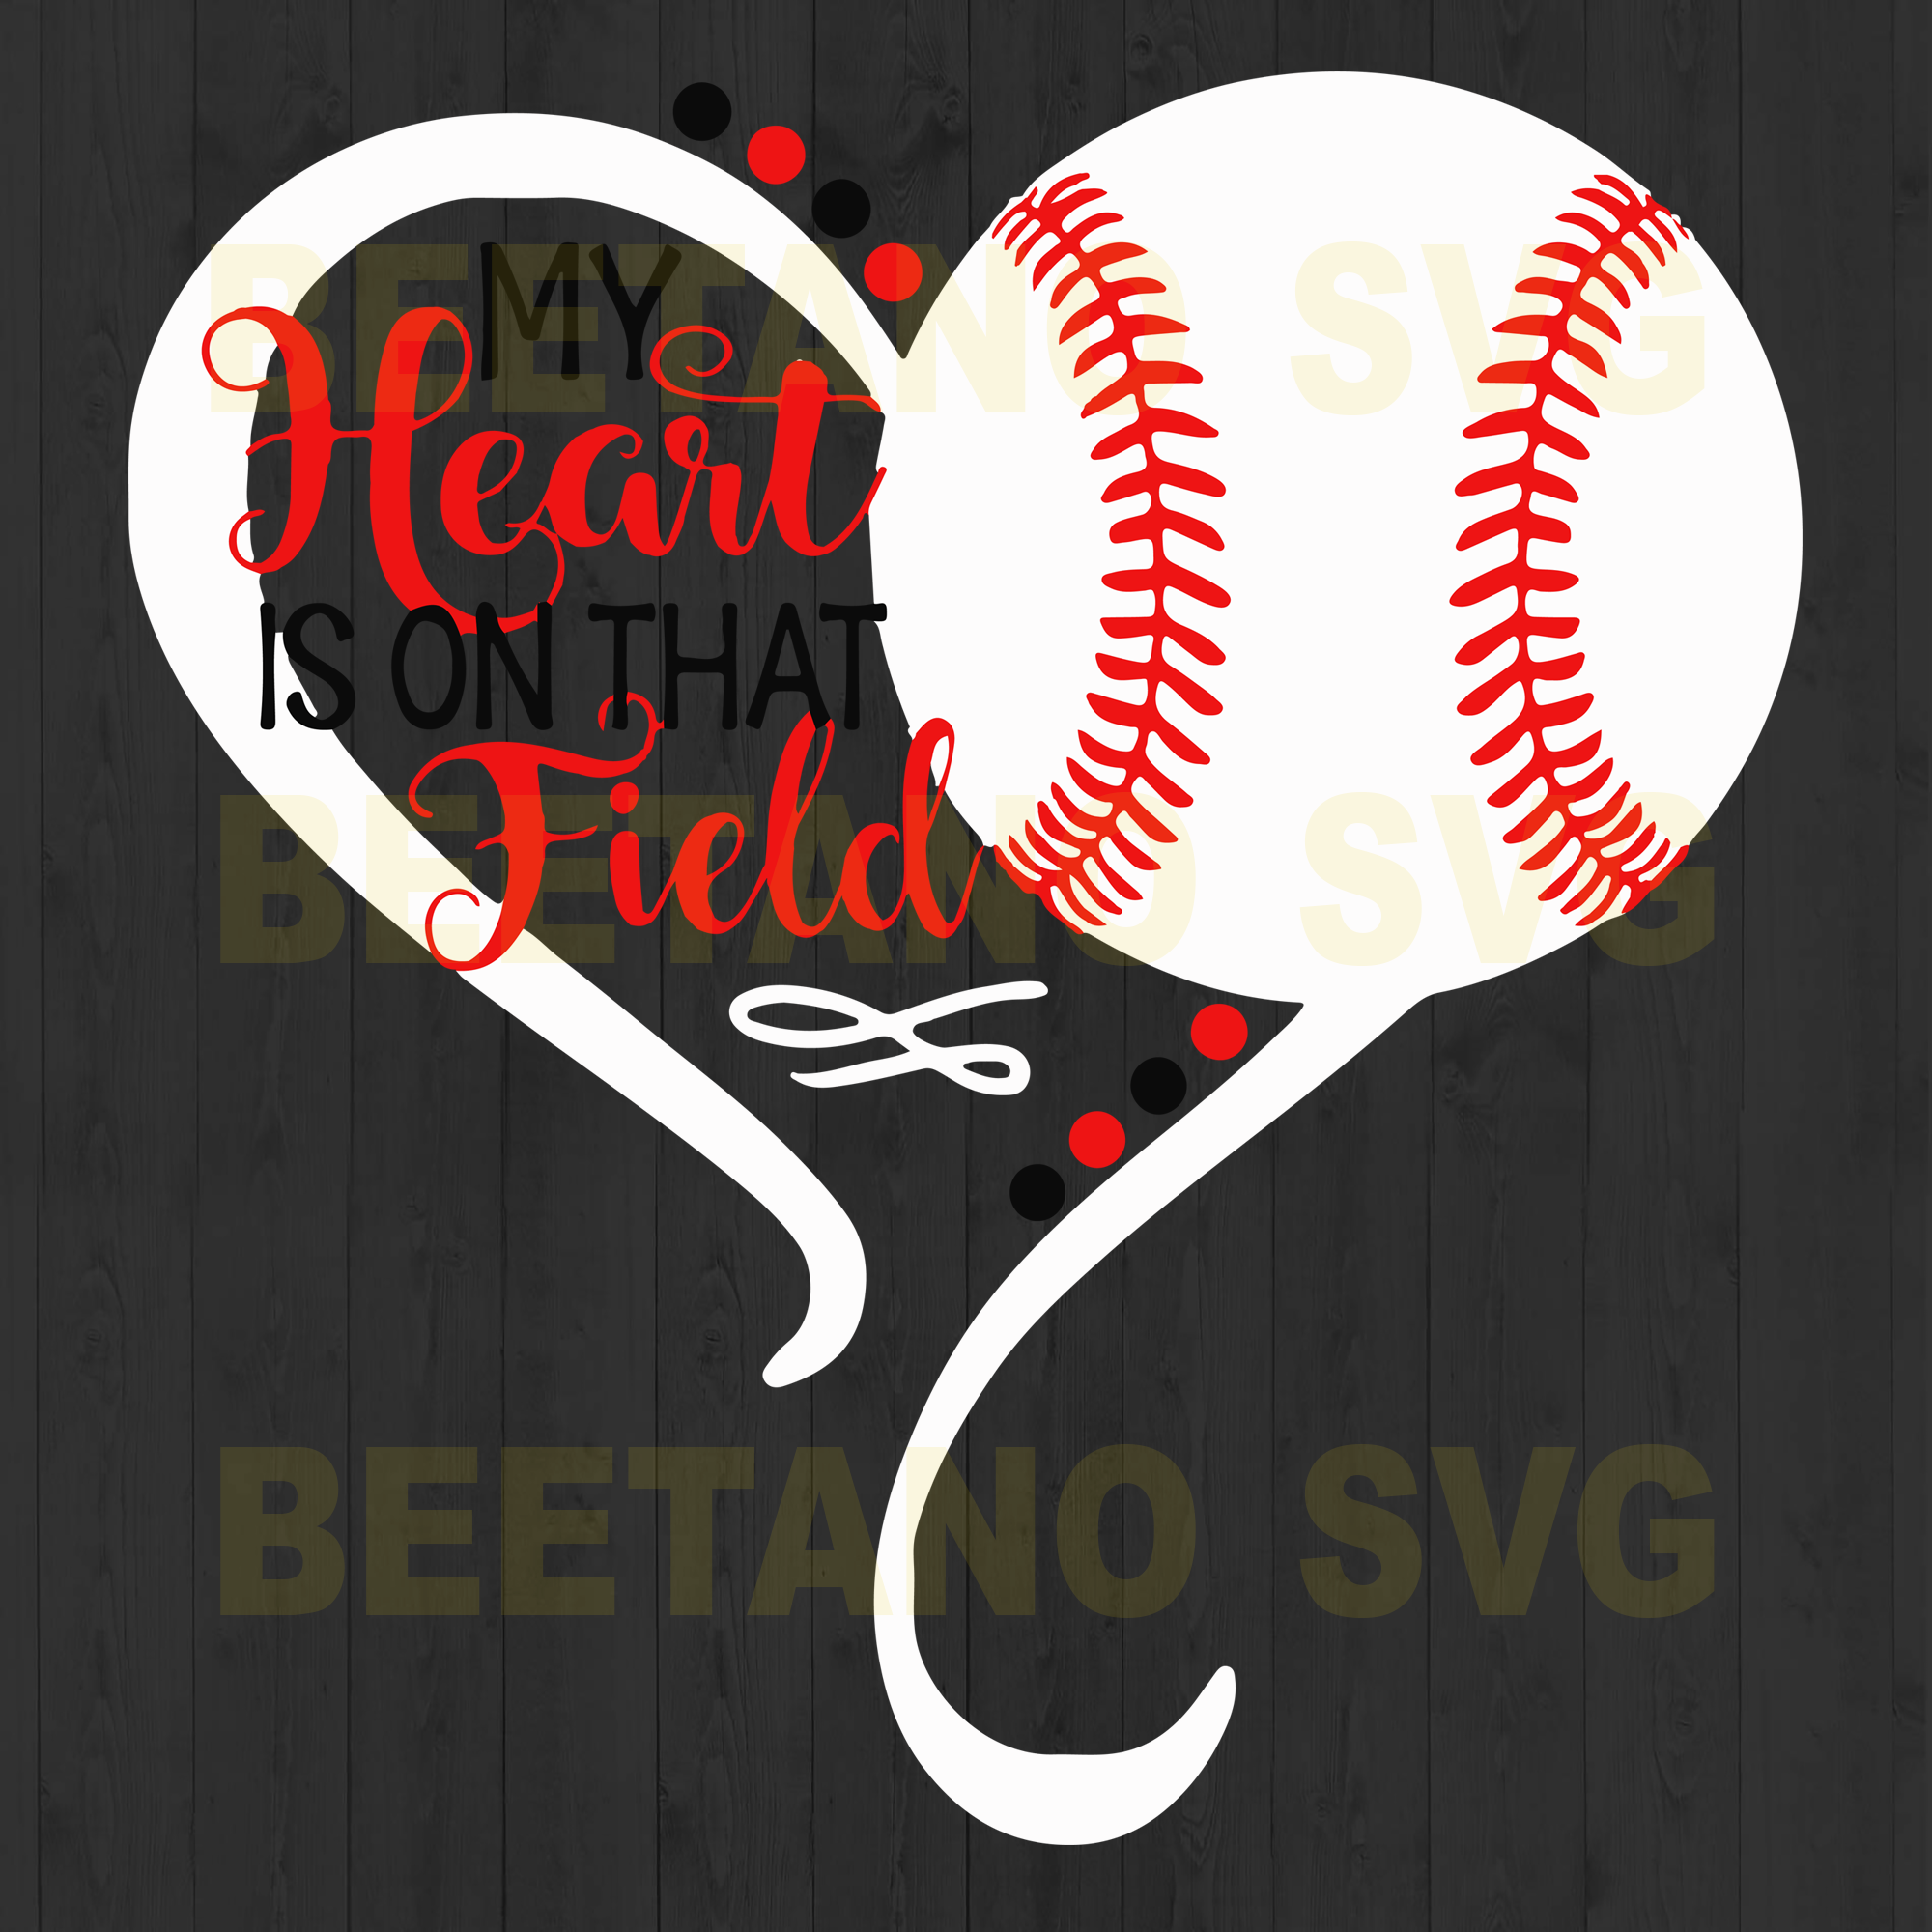 My Heart Is On That Field Softball Svg, Softball Vector, Softball Clipart, Softball Files, Softball Cutting Files For Cricut, SVG, DXF, EPS, PNG Instant Download